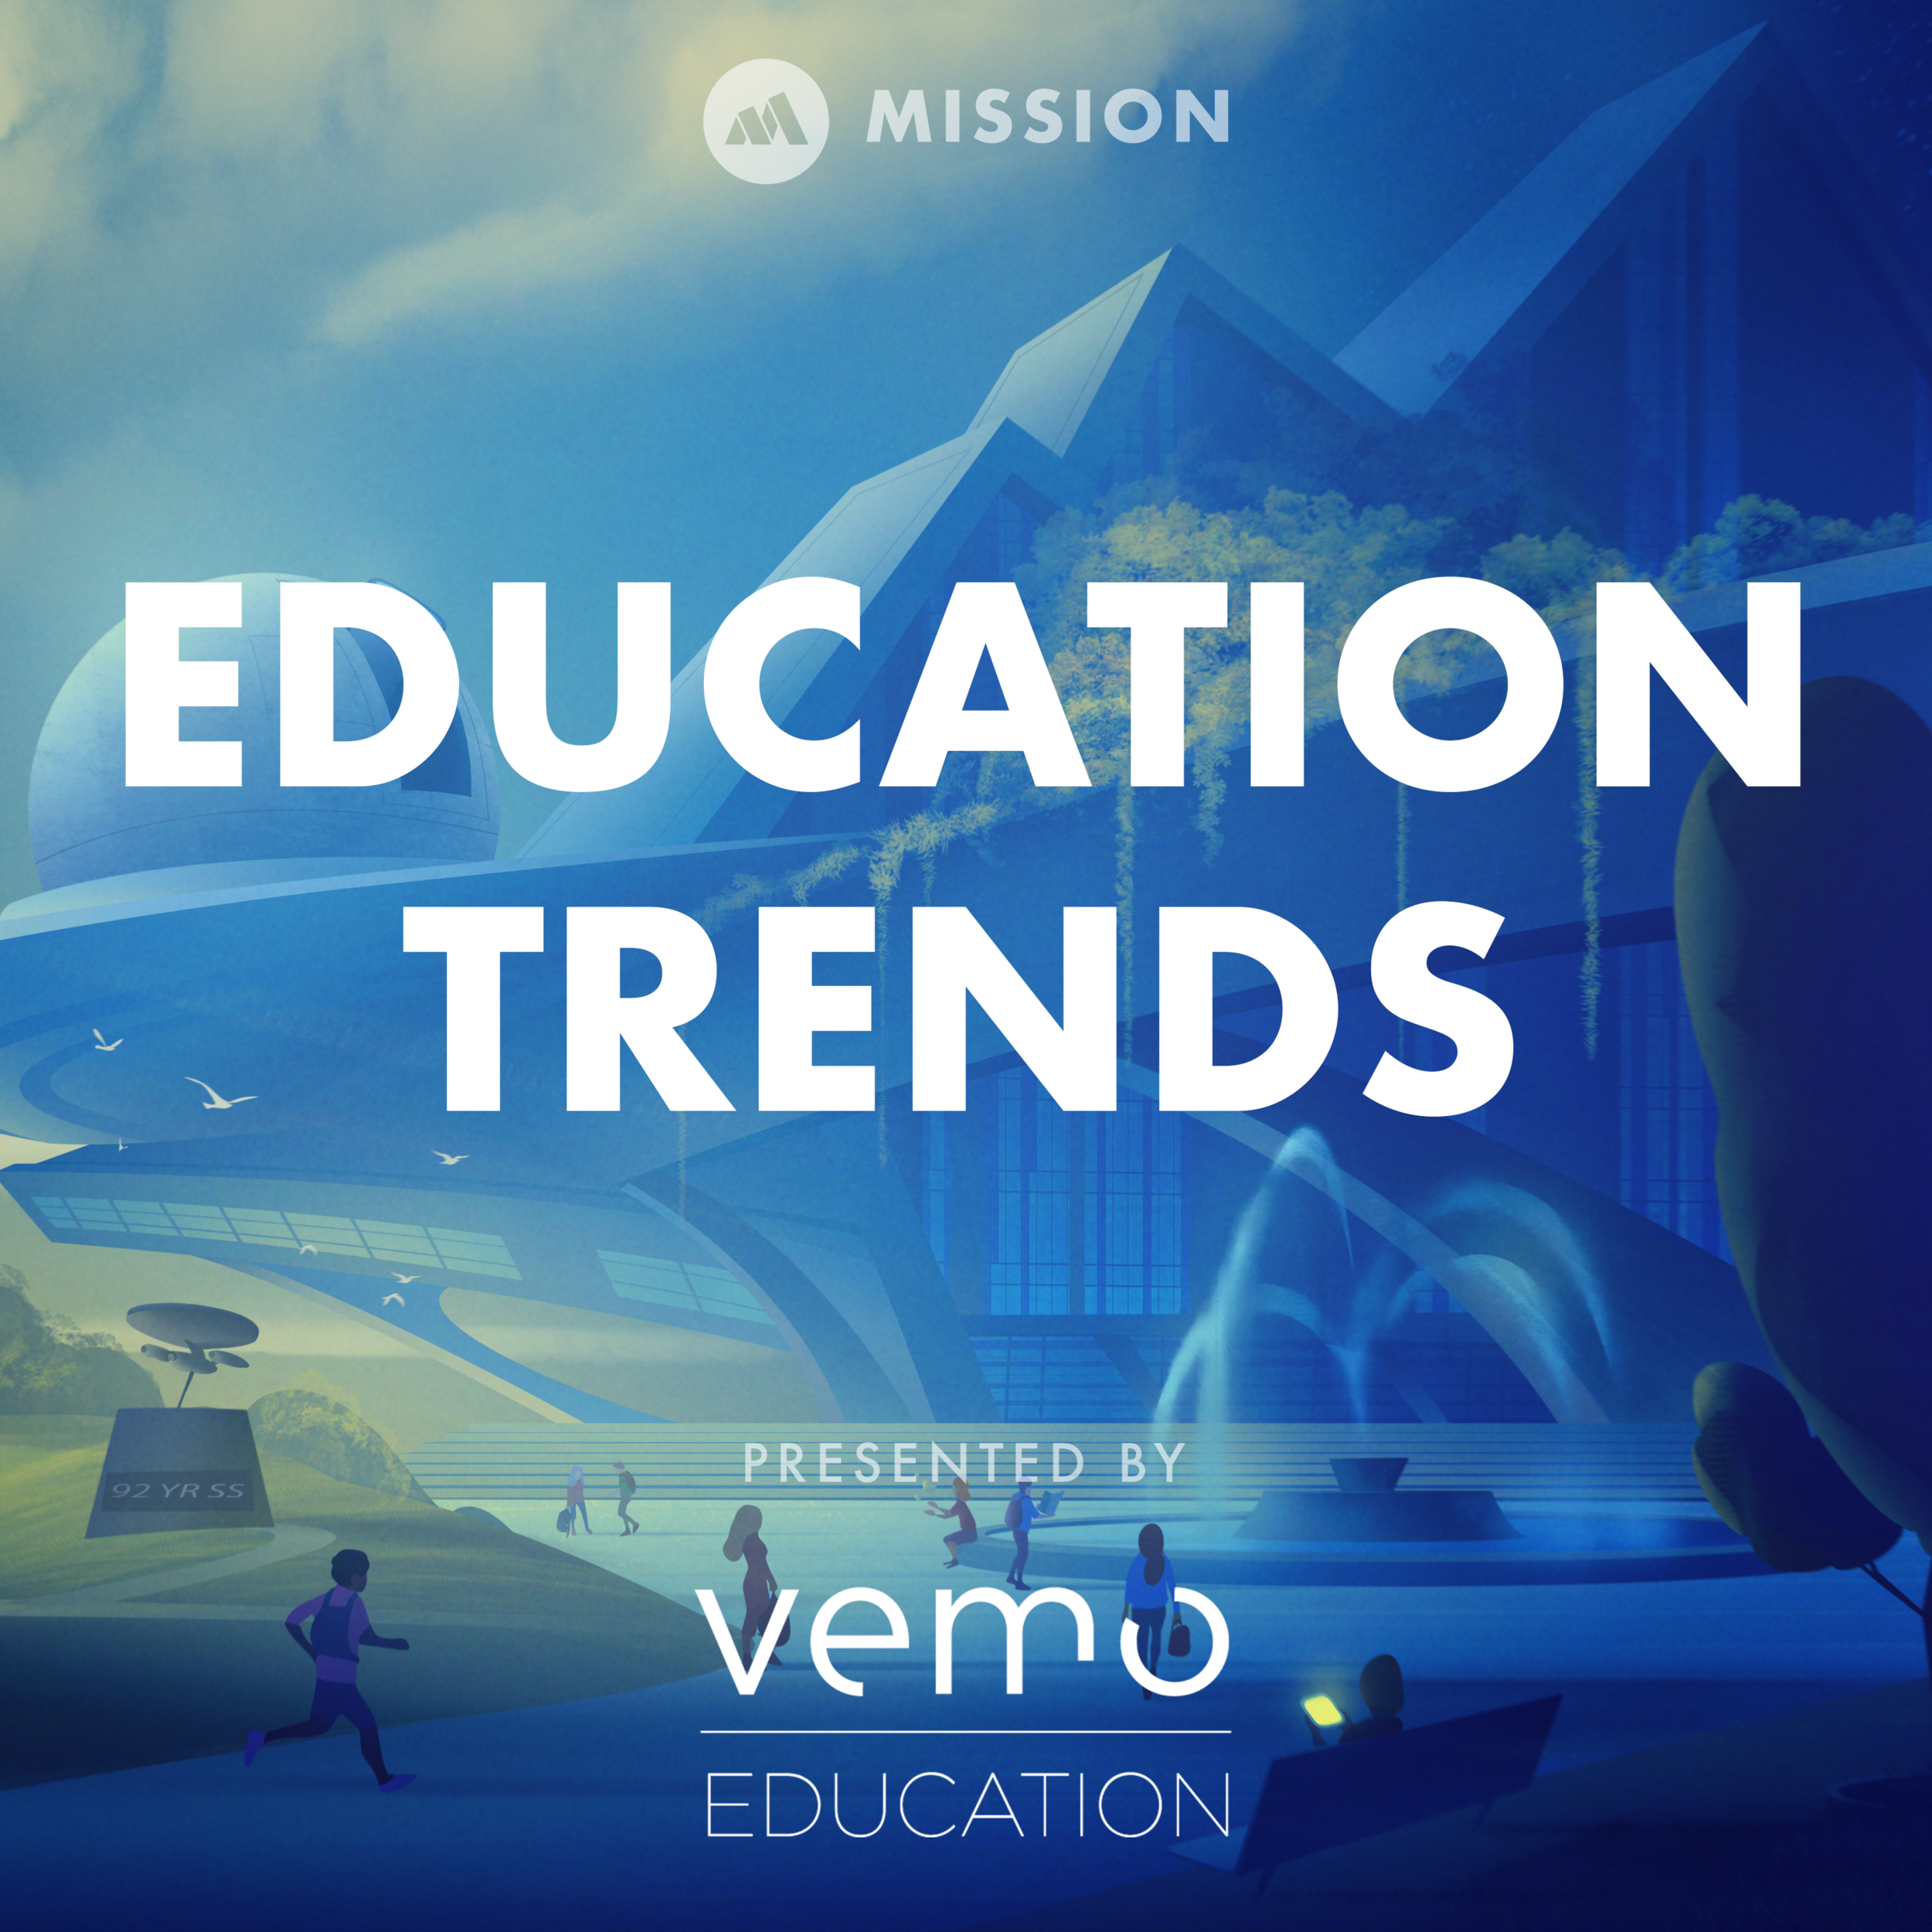 educationtrendscover.png